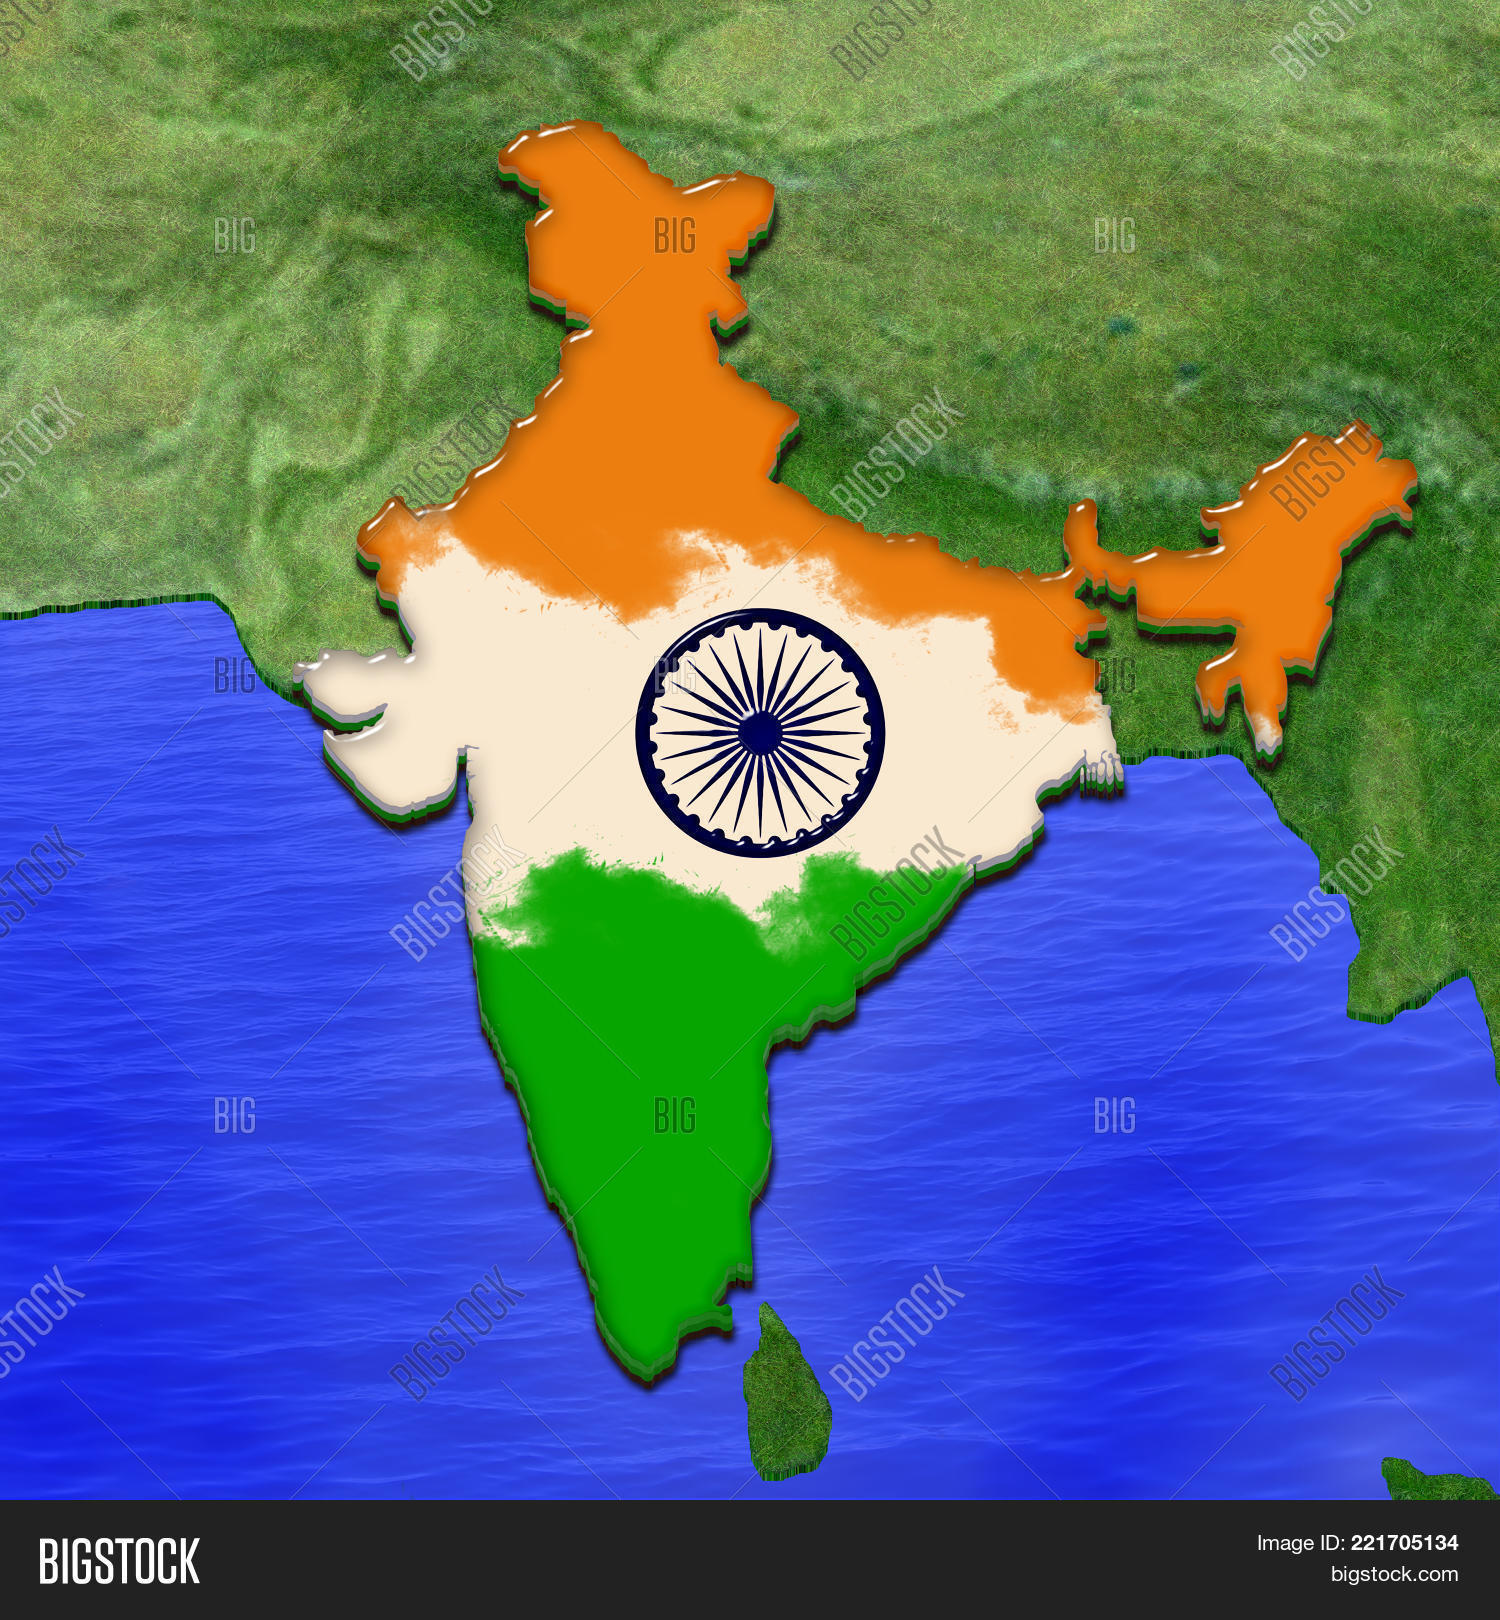 3D Map India Painted Image & Photo (Free Trial) | Bigstock India Big Map on big europe map, big yemen map, big honduras map, indan map, big albania map, big africa map, big australia map, big argentina map, big panama map, big florida map, big mexico map, big new hampshire map, big canada map, big usa map, big england map, big massachusetts map, big asia map, big costa rica map, big u.s. map, big ukraine map,